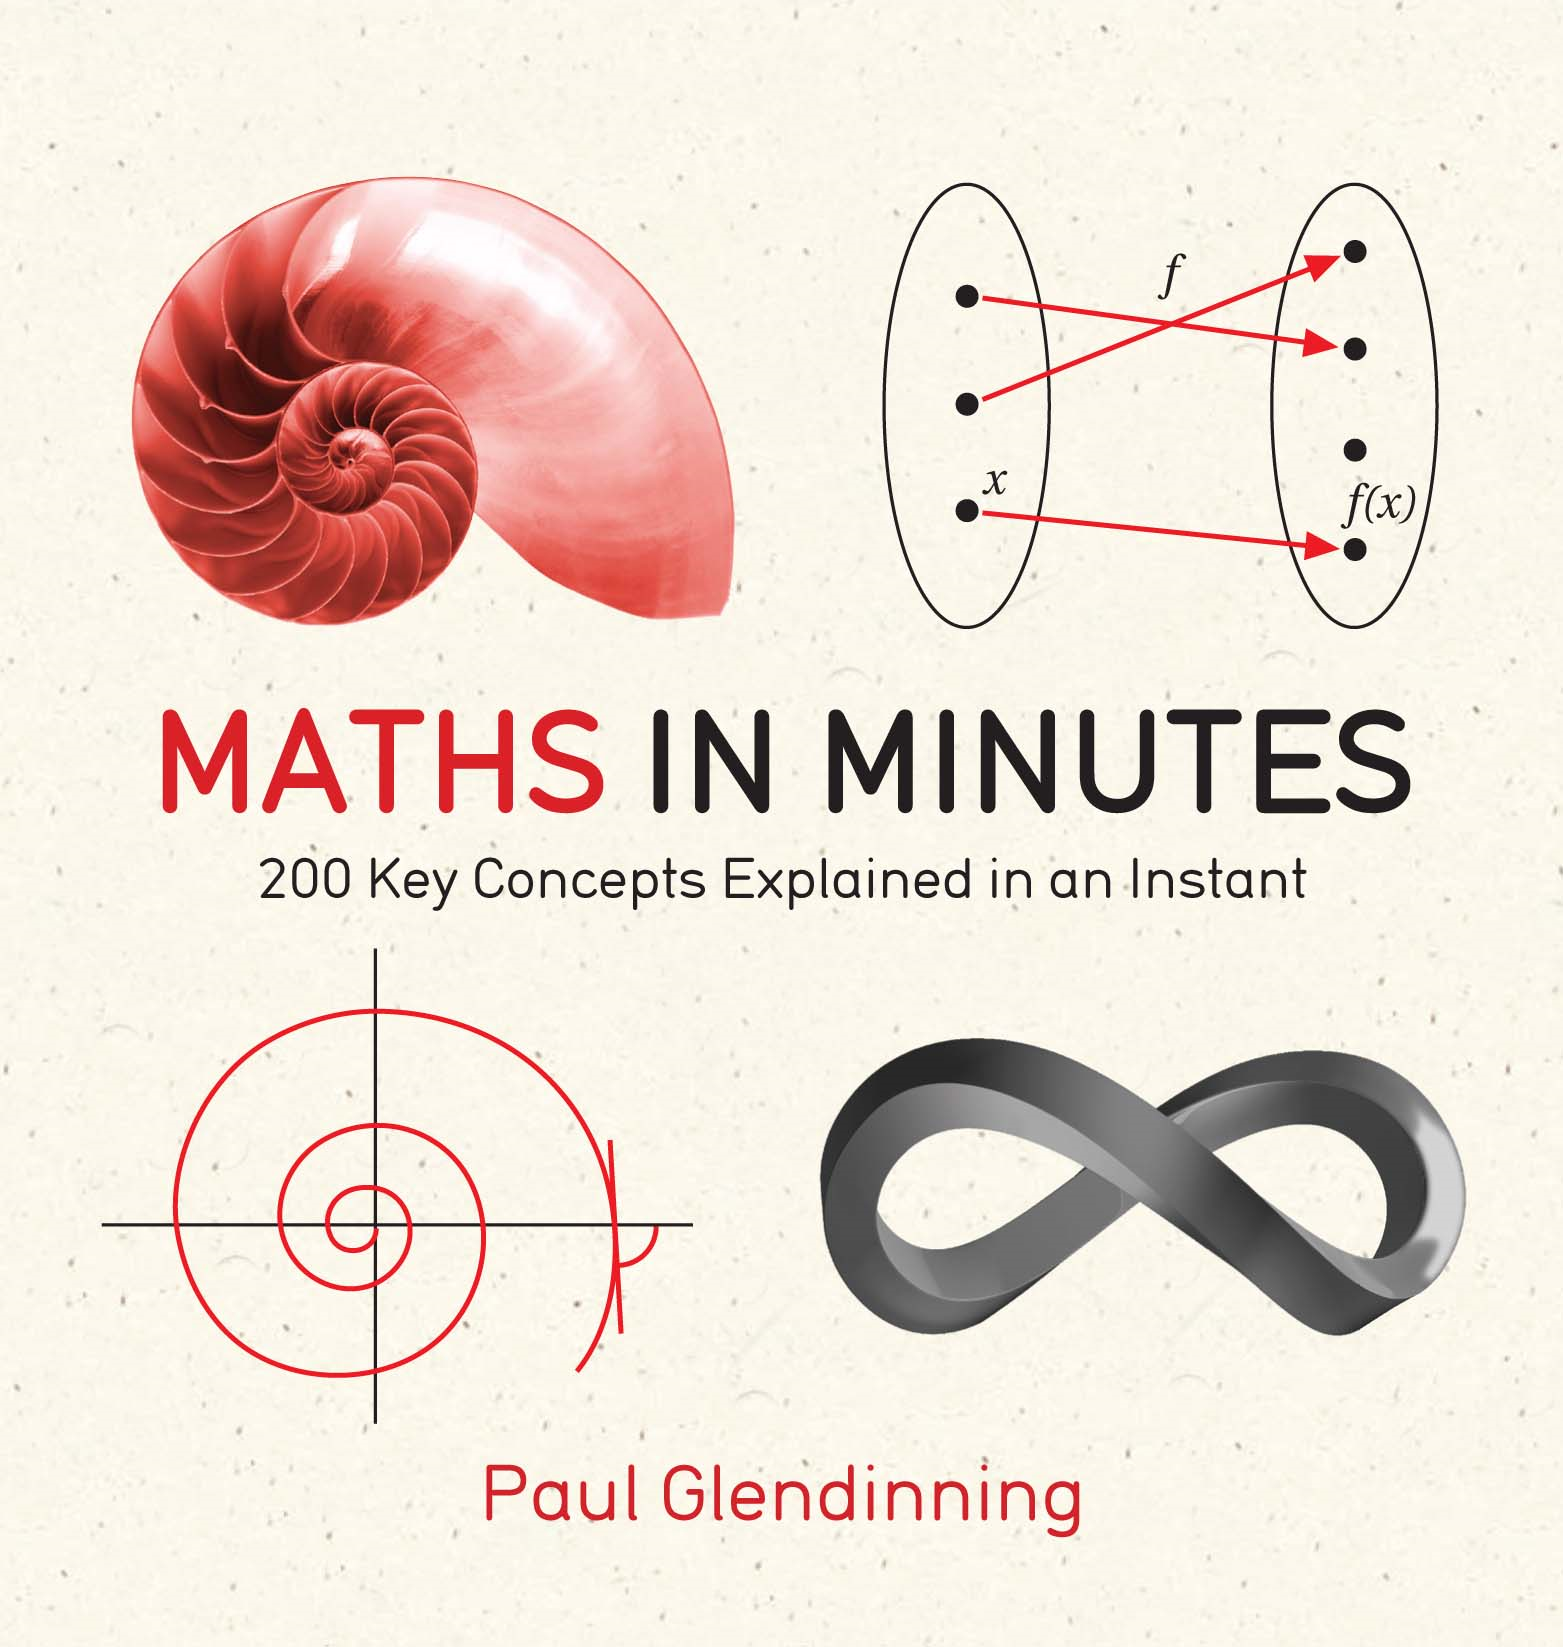 Maths in Minutes By: Paul Glendinning